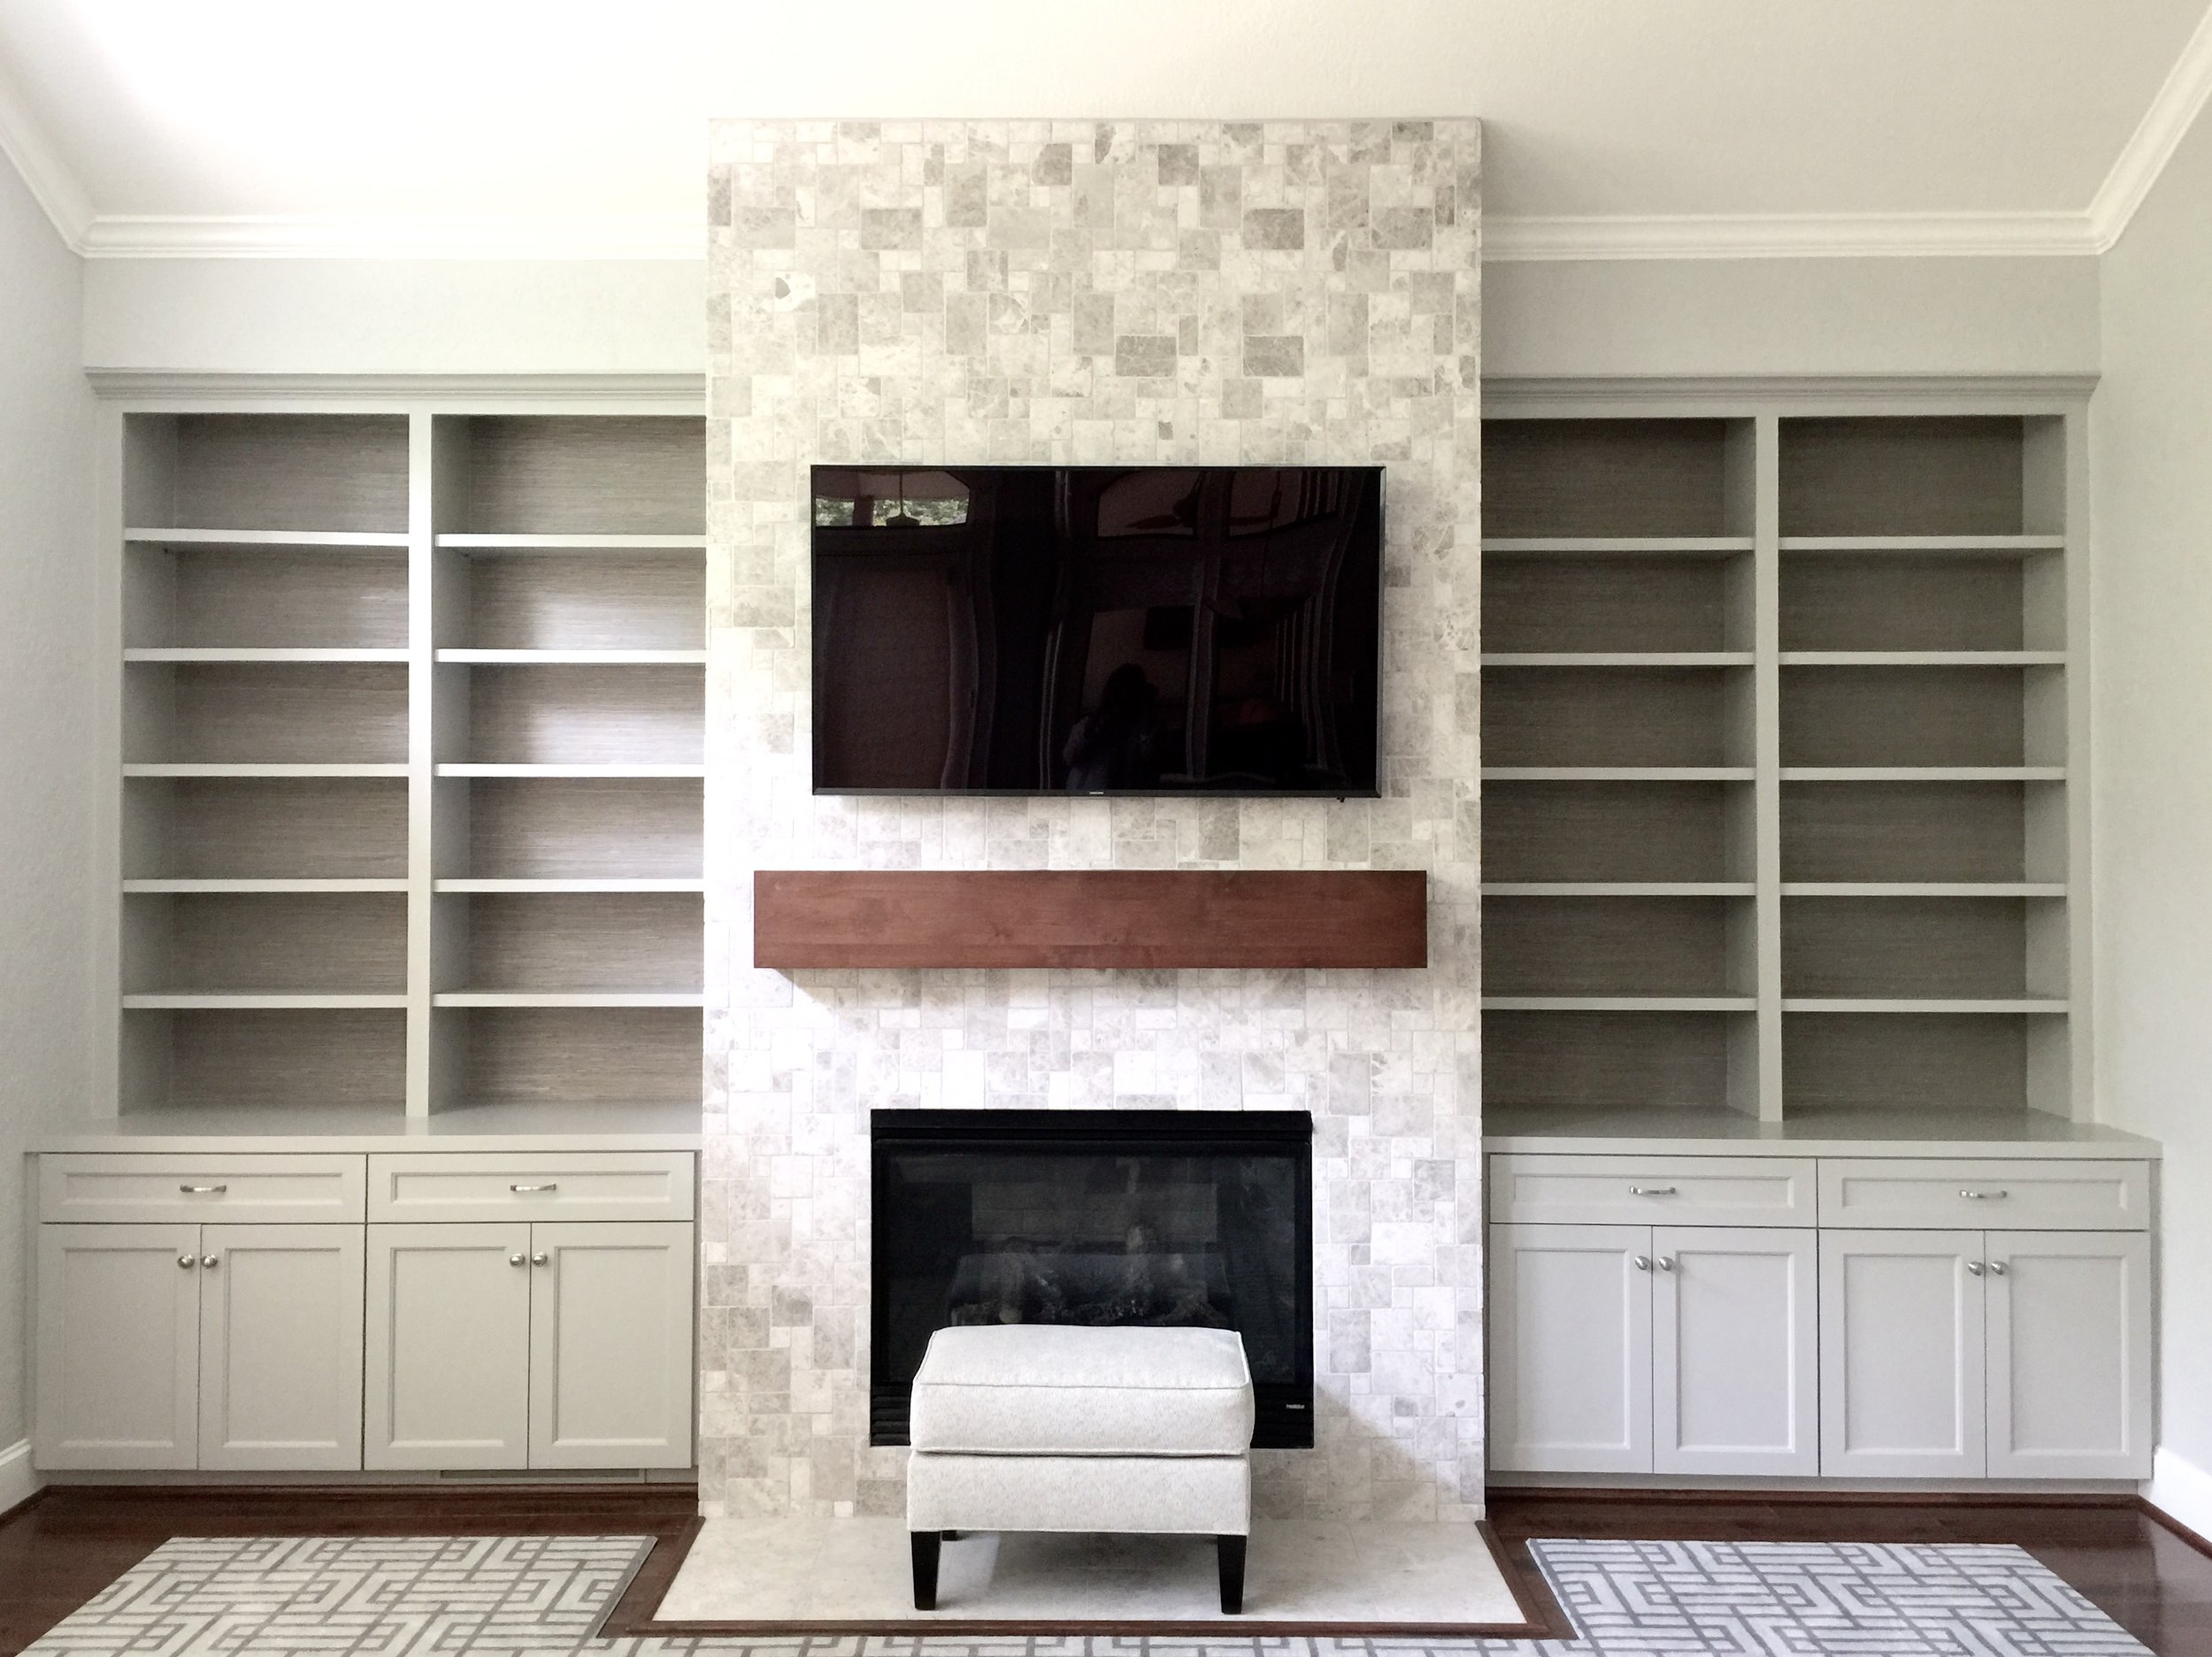 Designer: Carla Aston, Fireplace / built-in cabinetry wall, custom rug cut to fit around hearth